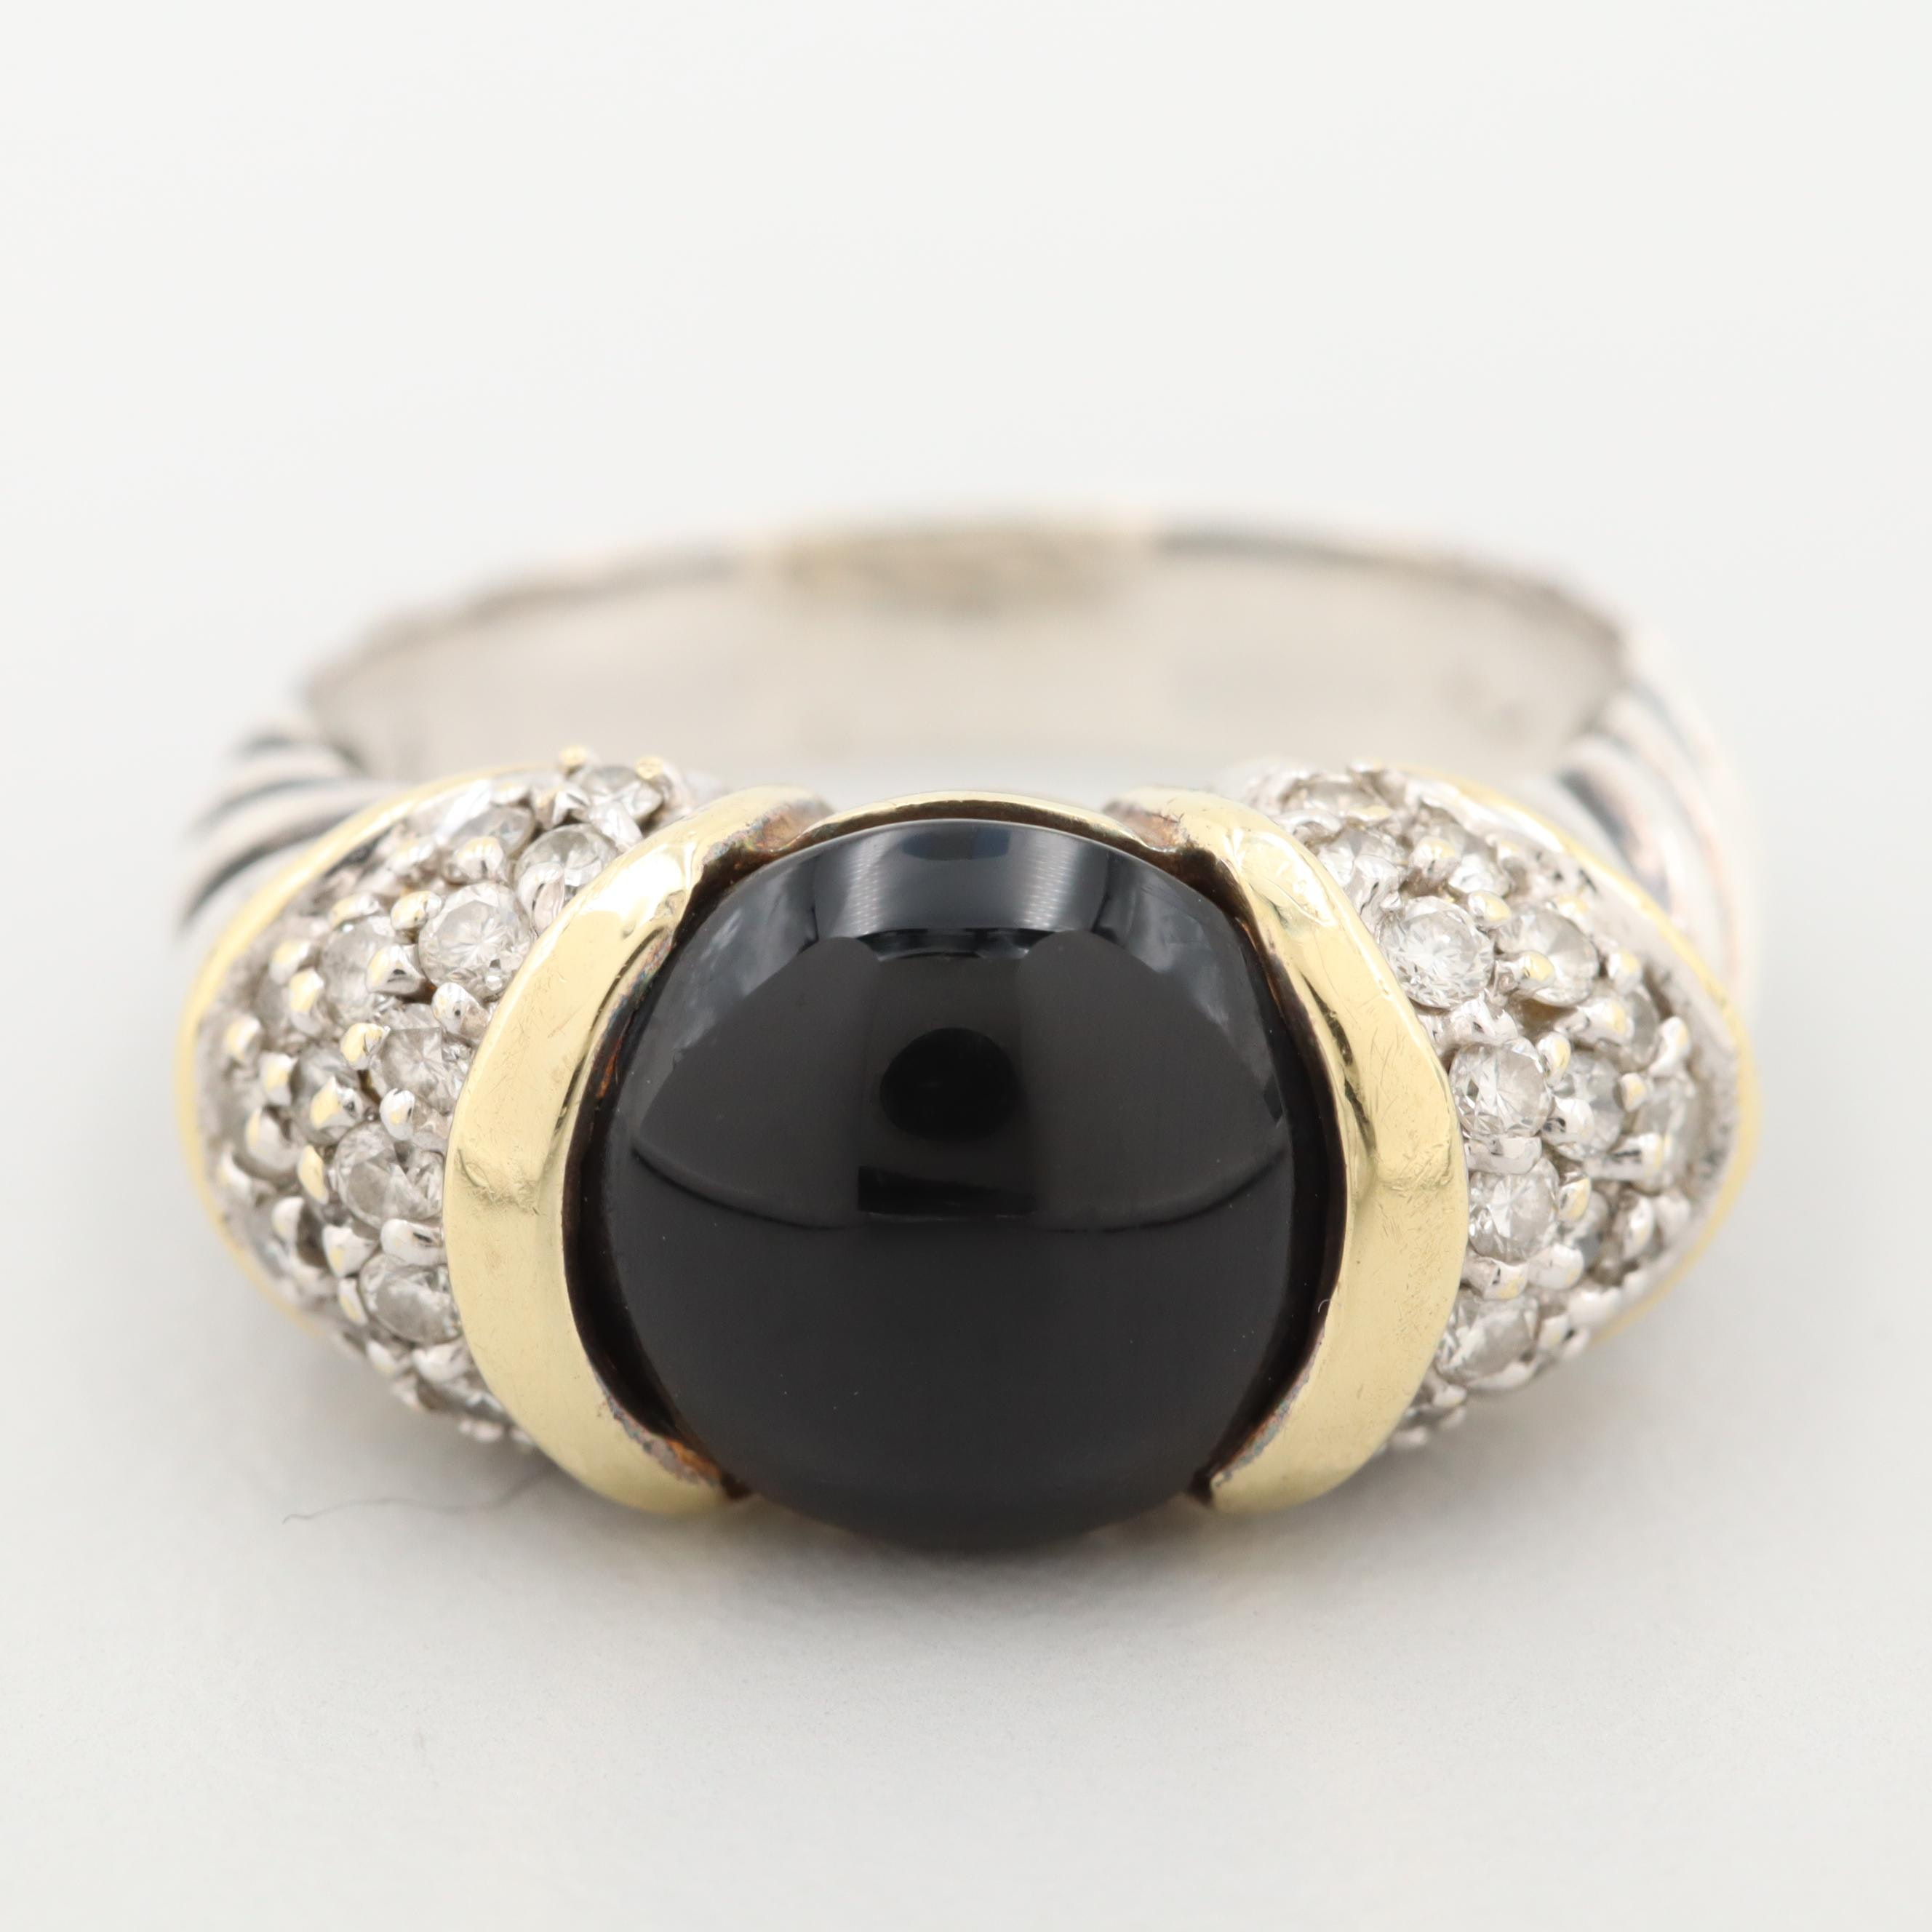 David Yurman Sterling Black Onyx and Diamond Ring with 18K Gold Accents